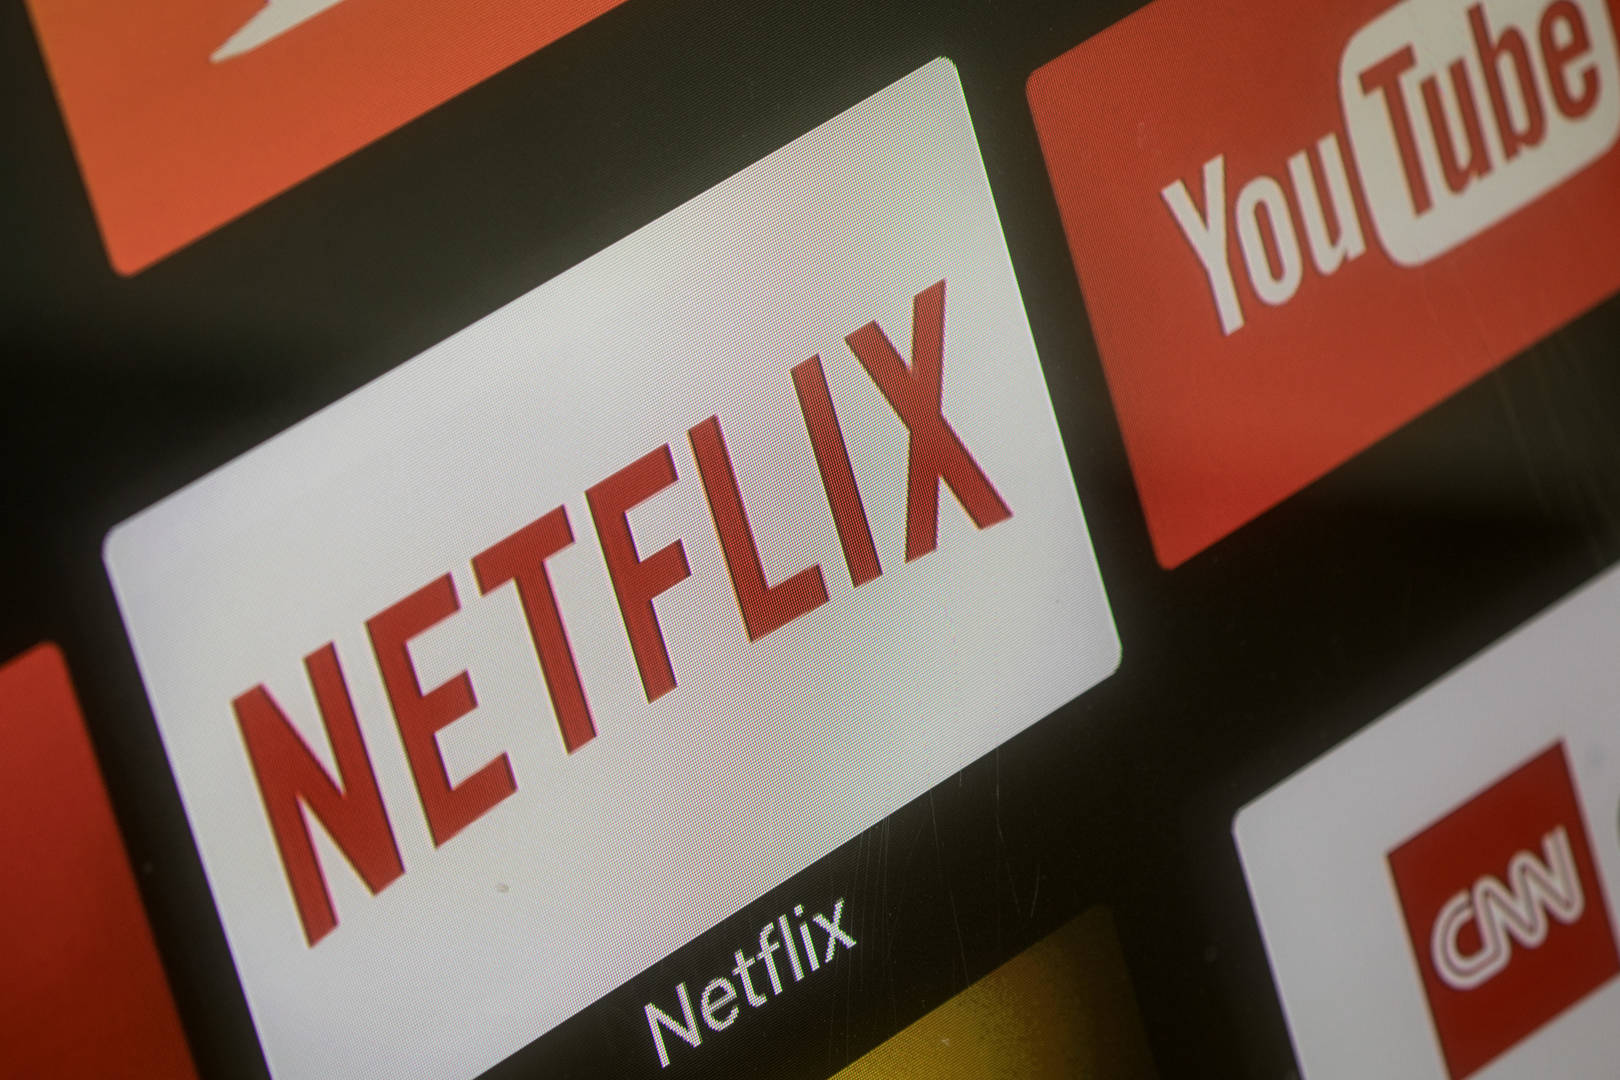 Netflix Lost 130,000 rs In Q2, First Major Hit Since Platform's Birth